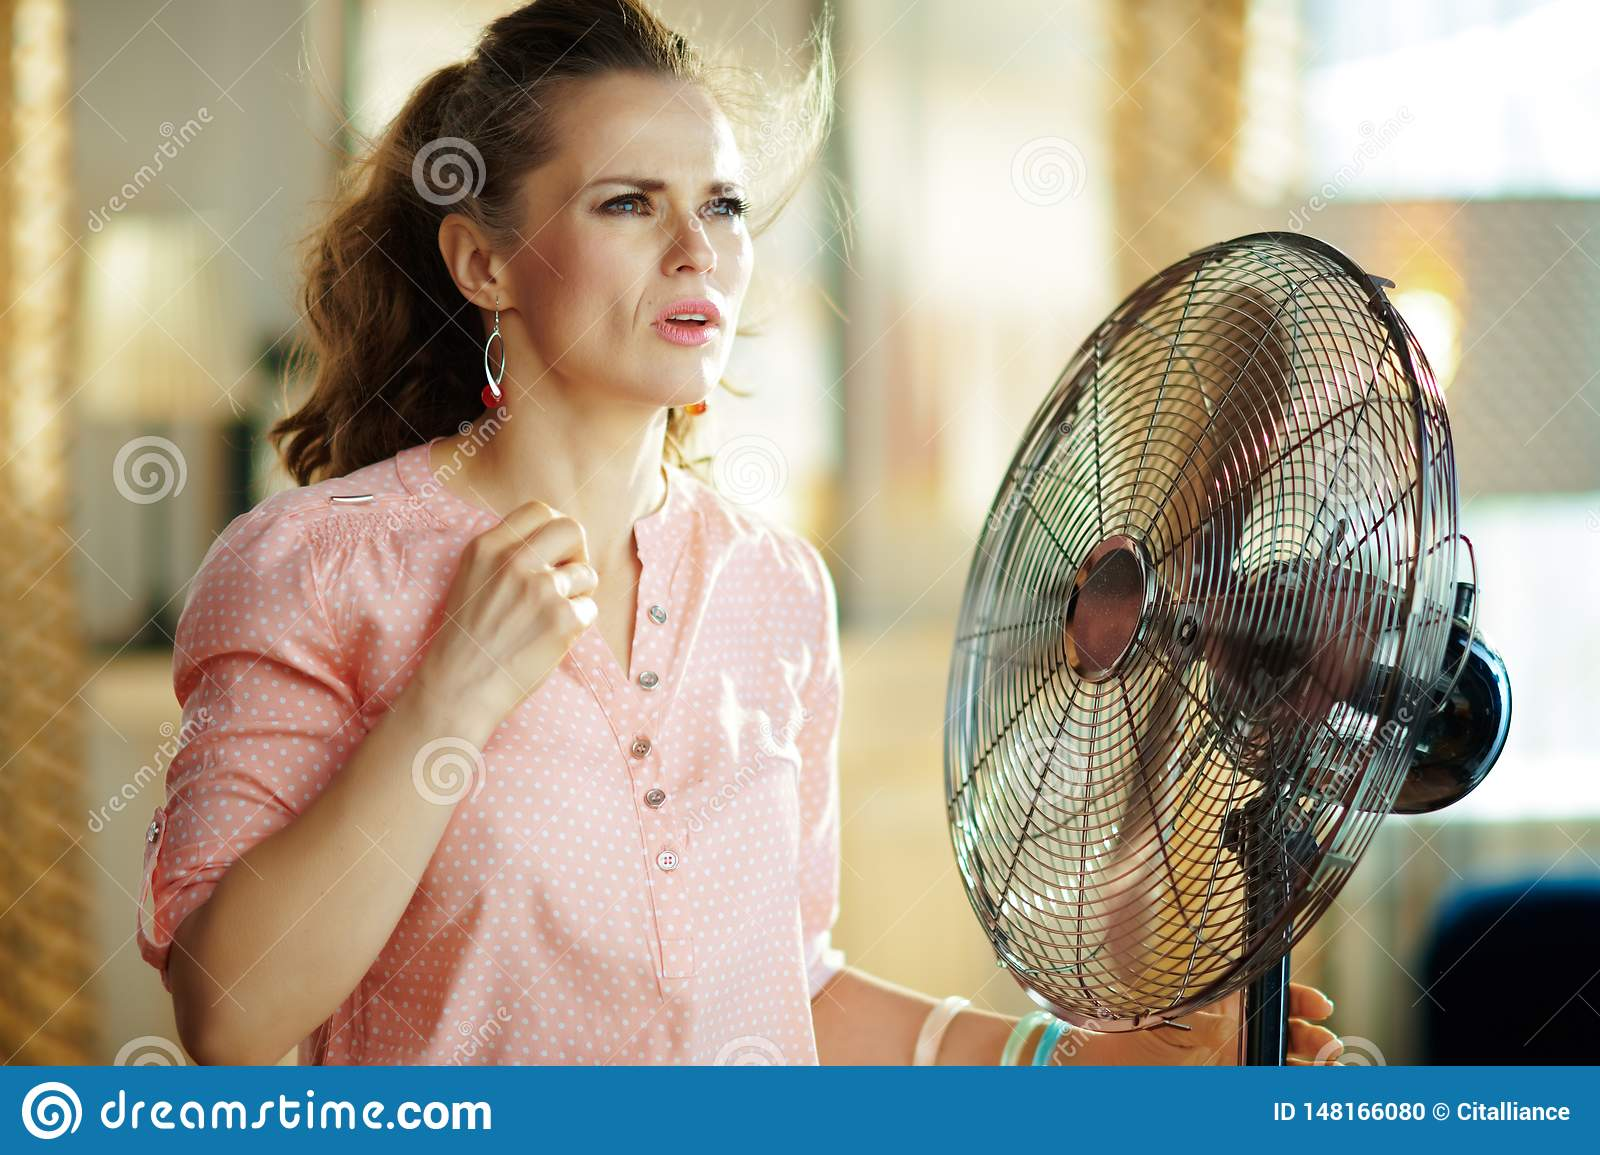 Woman suffering from summer heat while standing in front of fan